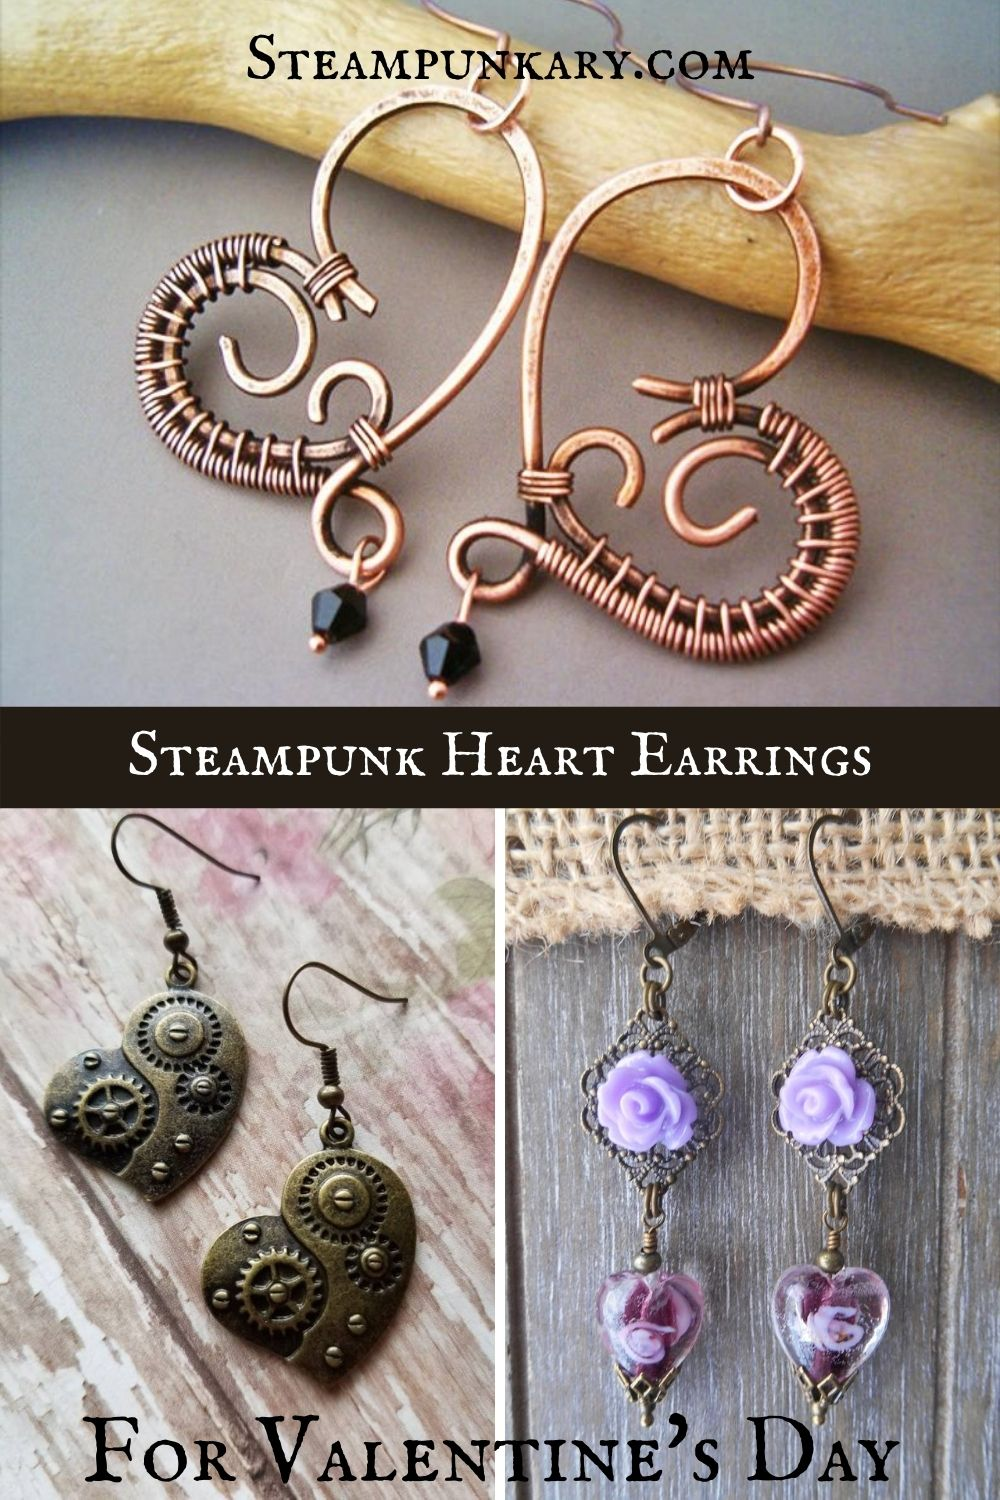 Steampunk Heart Earrings for Valentine's Day